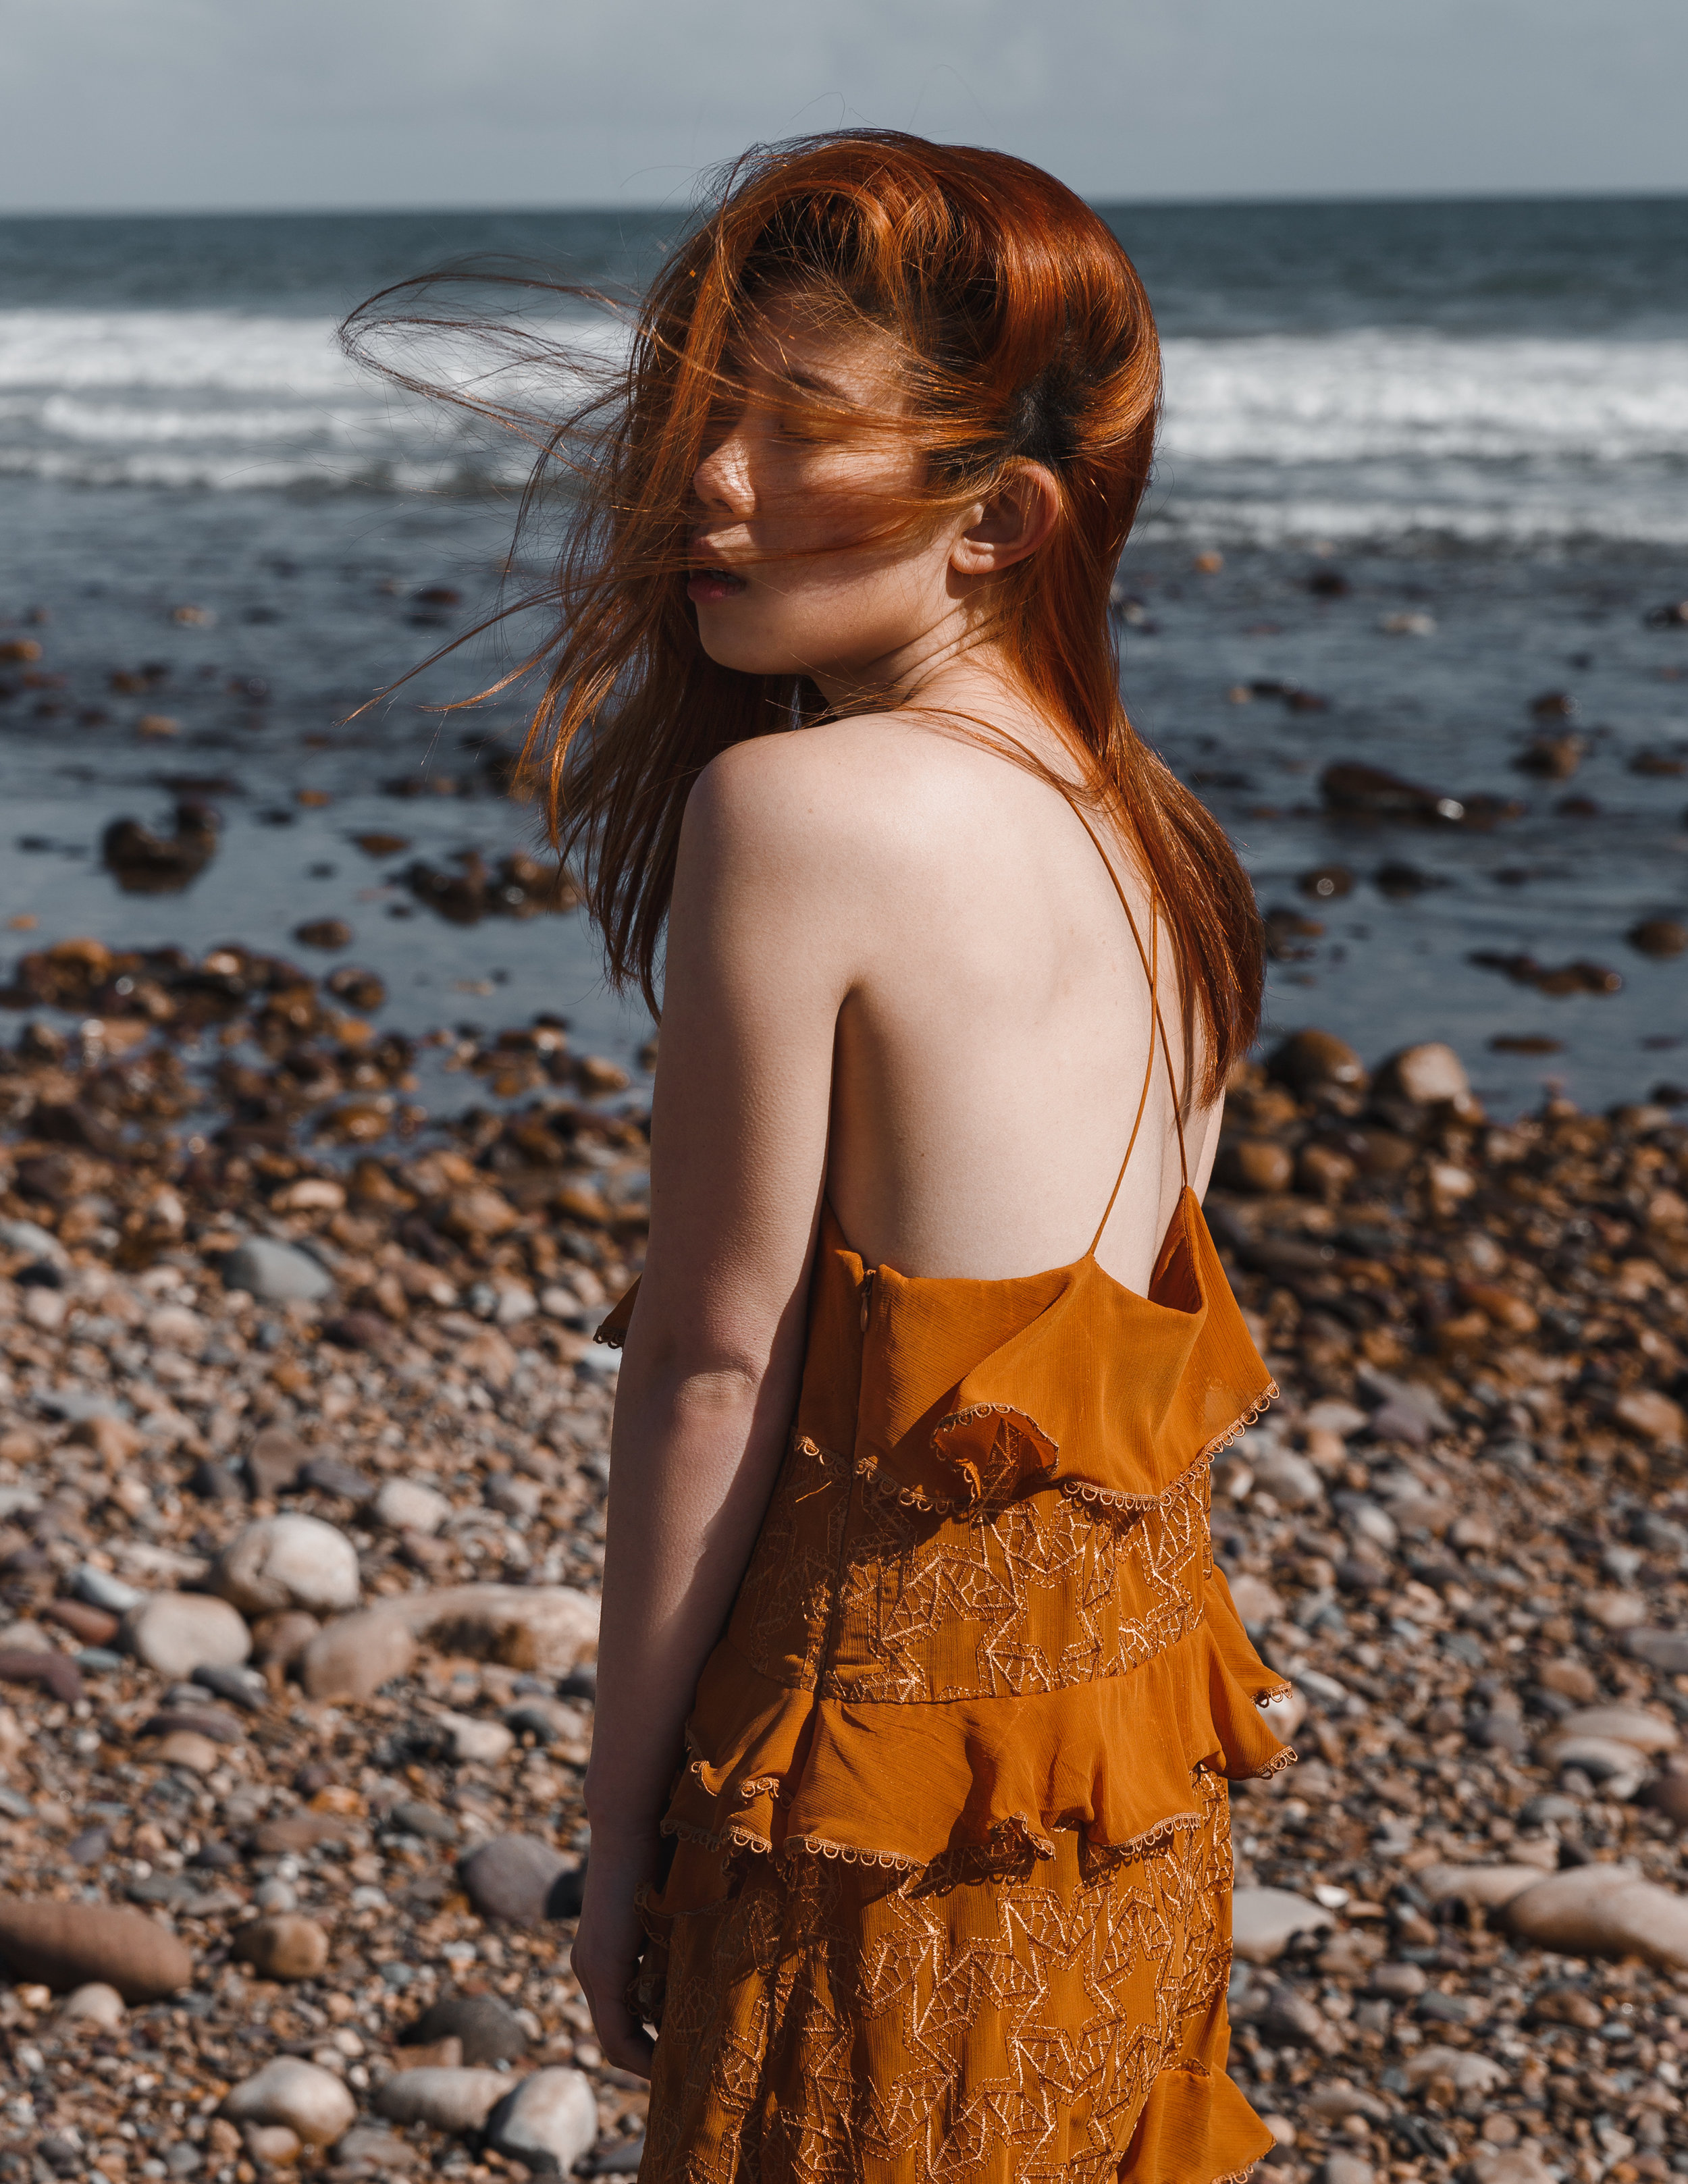 On the Rocks - Fashion editorial printed in Volant Magazine October 2018.Model: Nicole FangHMUA: Zoe PapanikolaouClothing supplied by: What's Mine is Yours HireCreative and Photography: By Kim Fisher